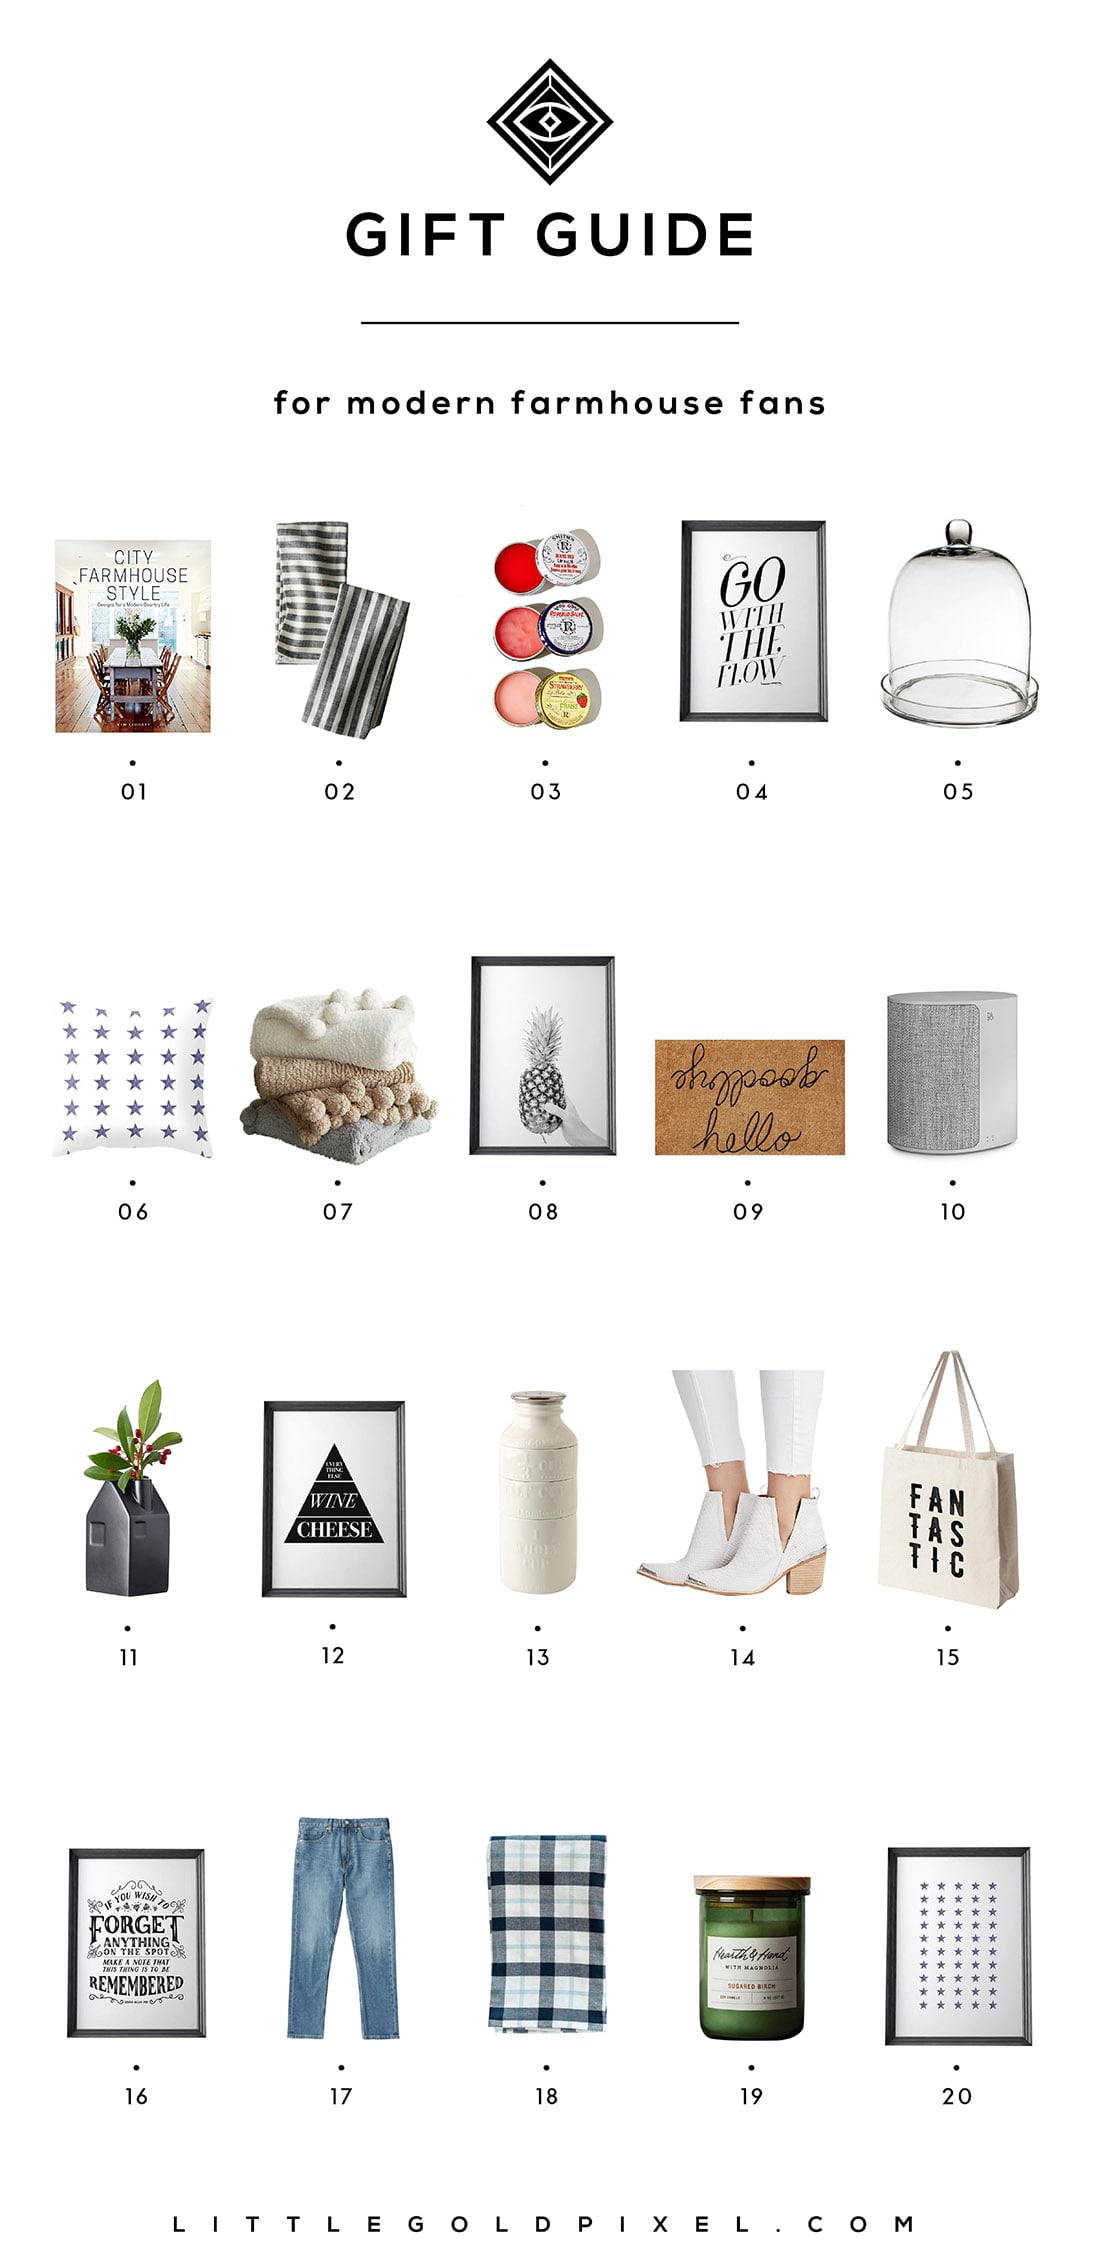 Little Gold Pixel's Modern Farmhouse Gift Guide: Here are 20 gifts perfect for the Fixer Upper fans in your life. Grab one for yourself while you're at it!